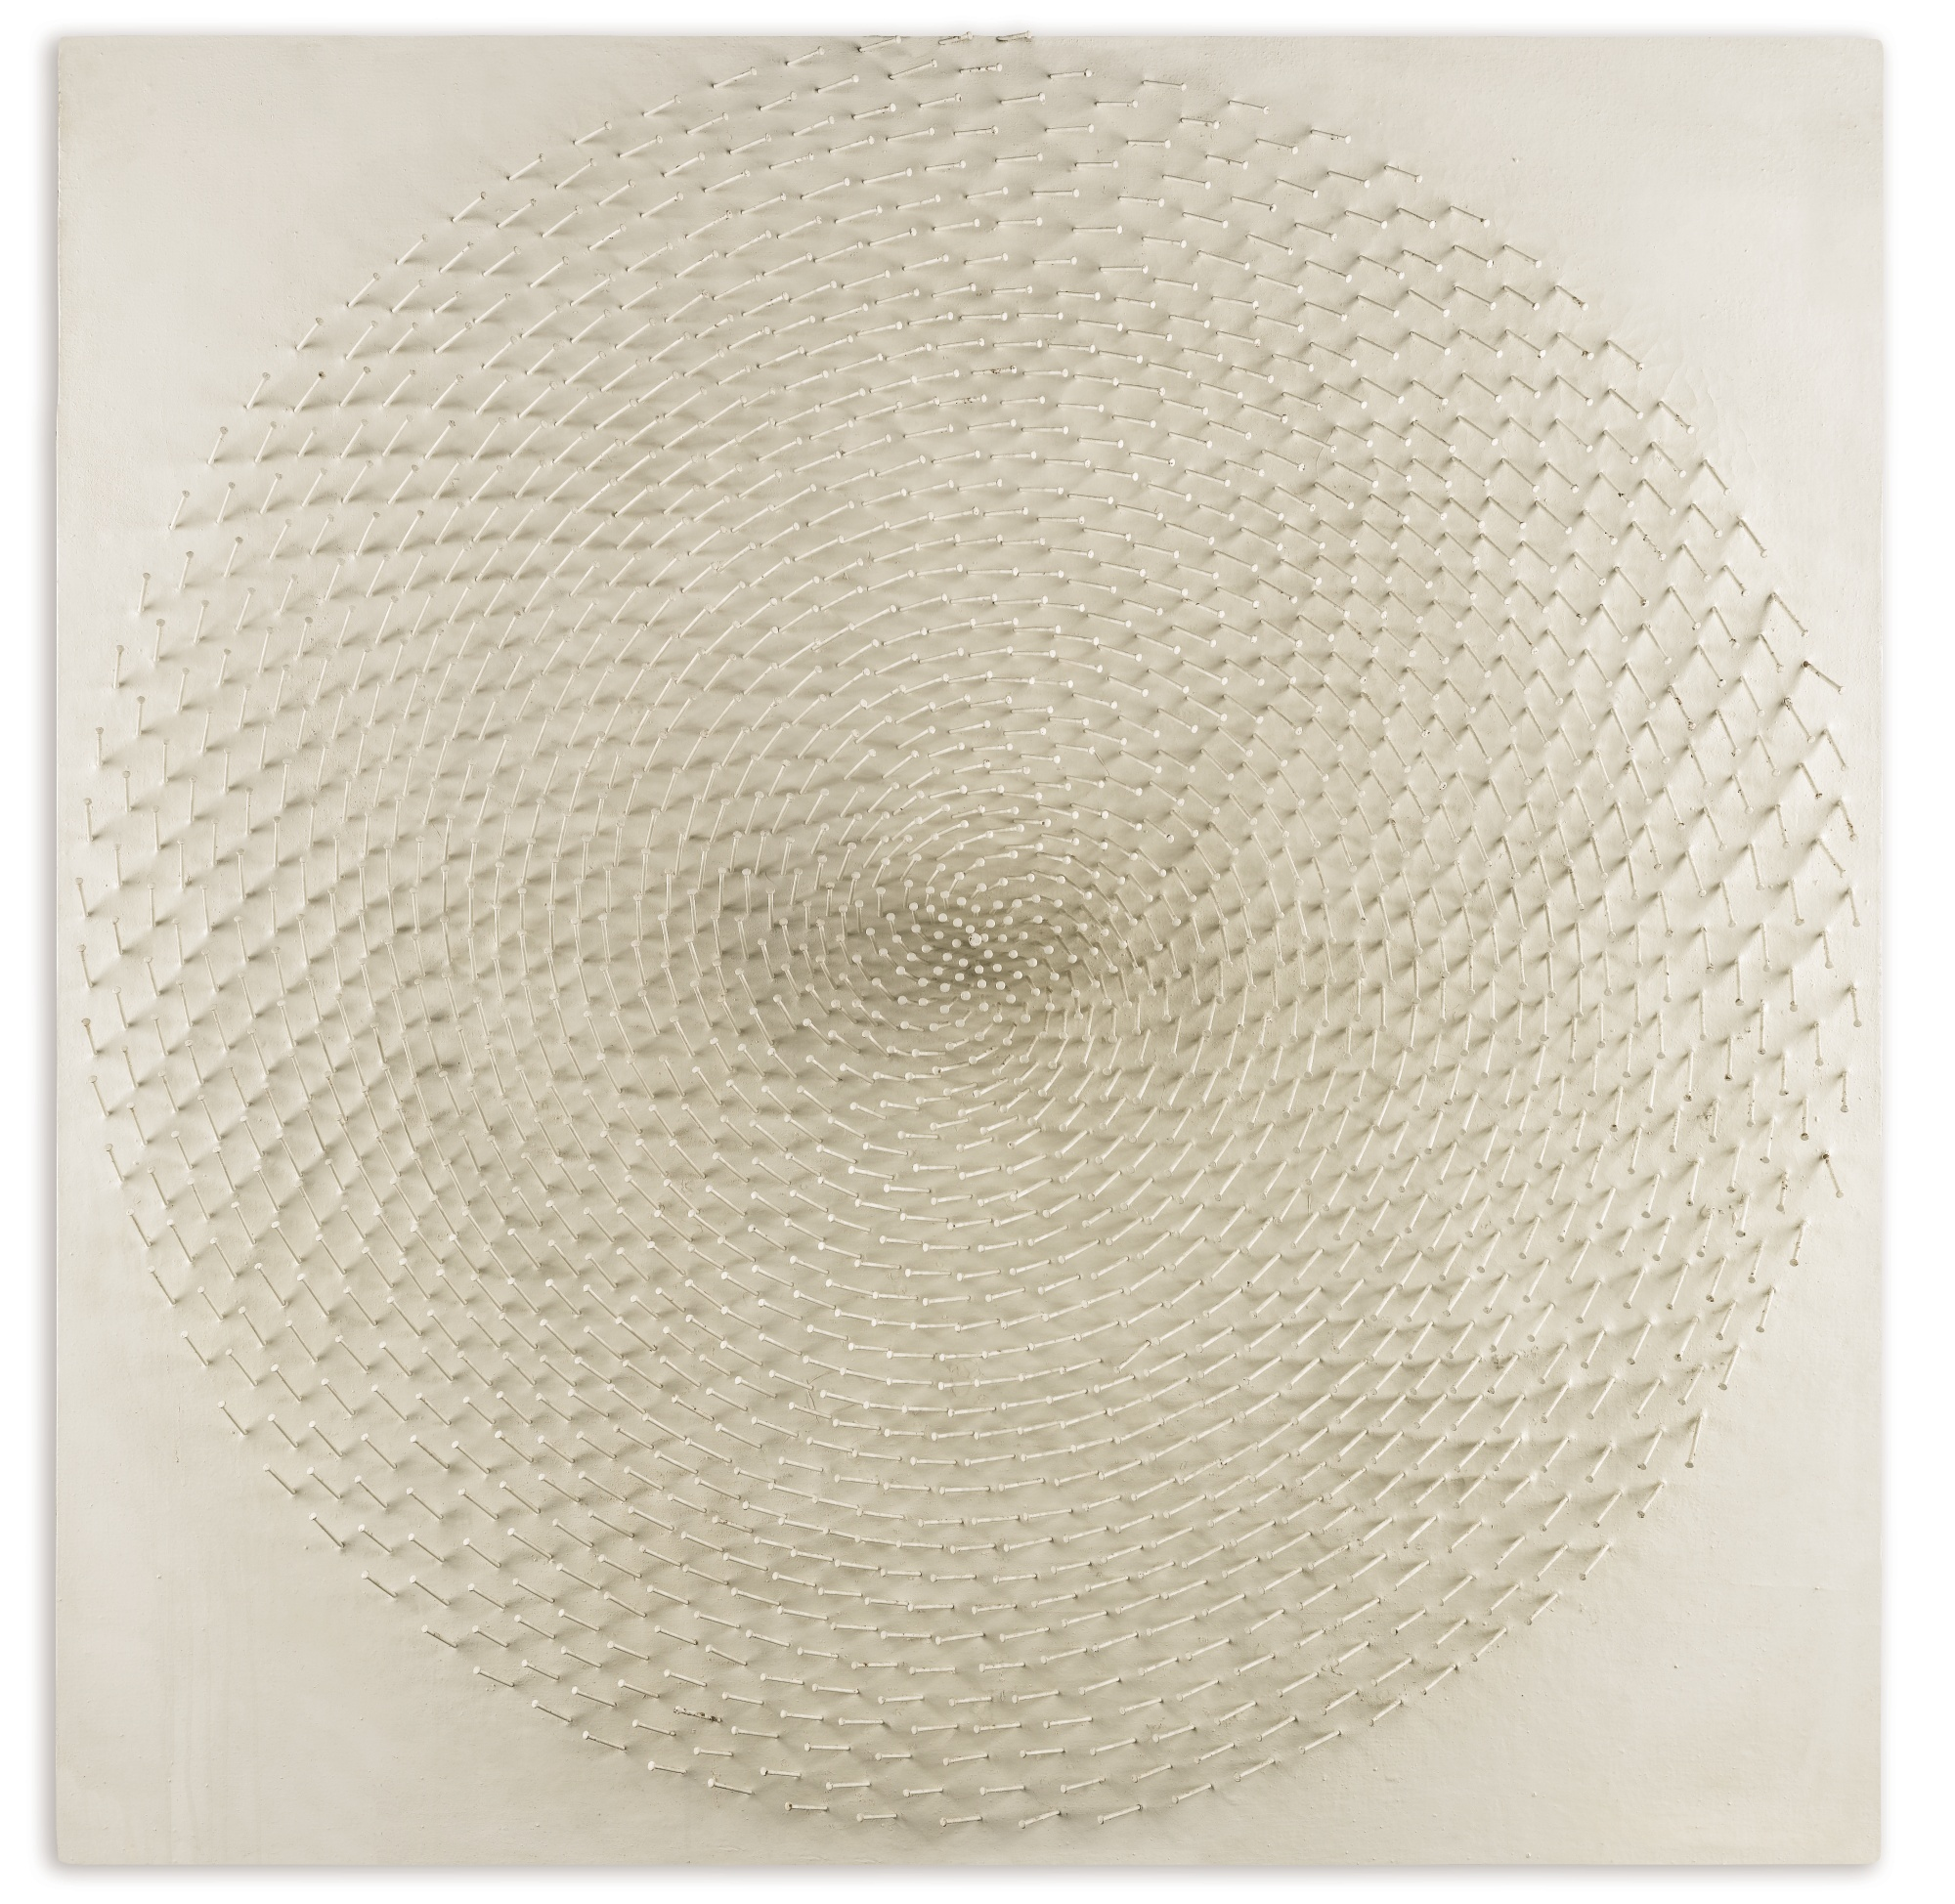 Gunther Uecker-Spirale-1966